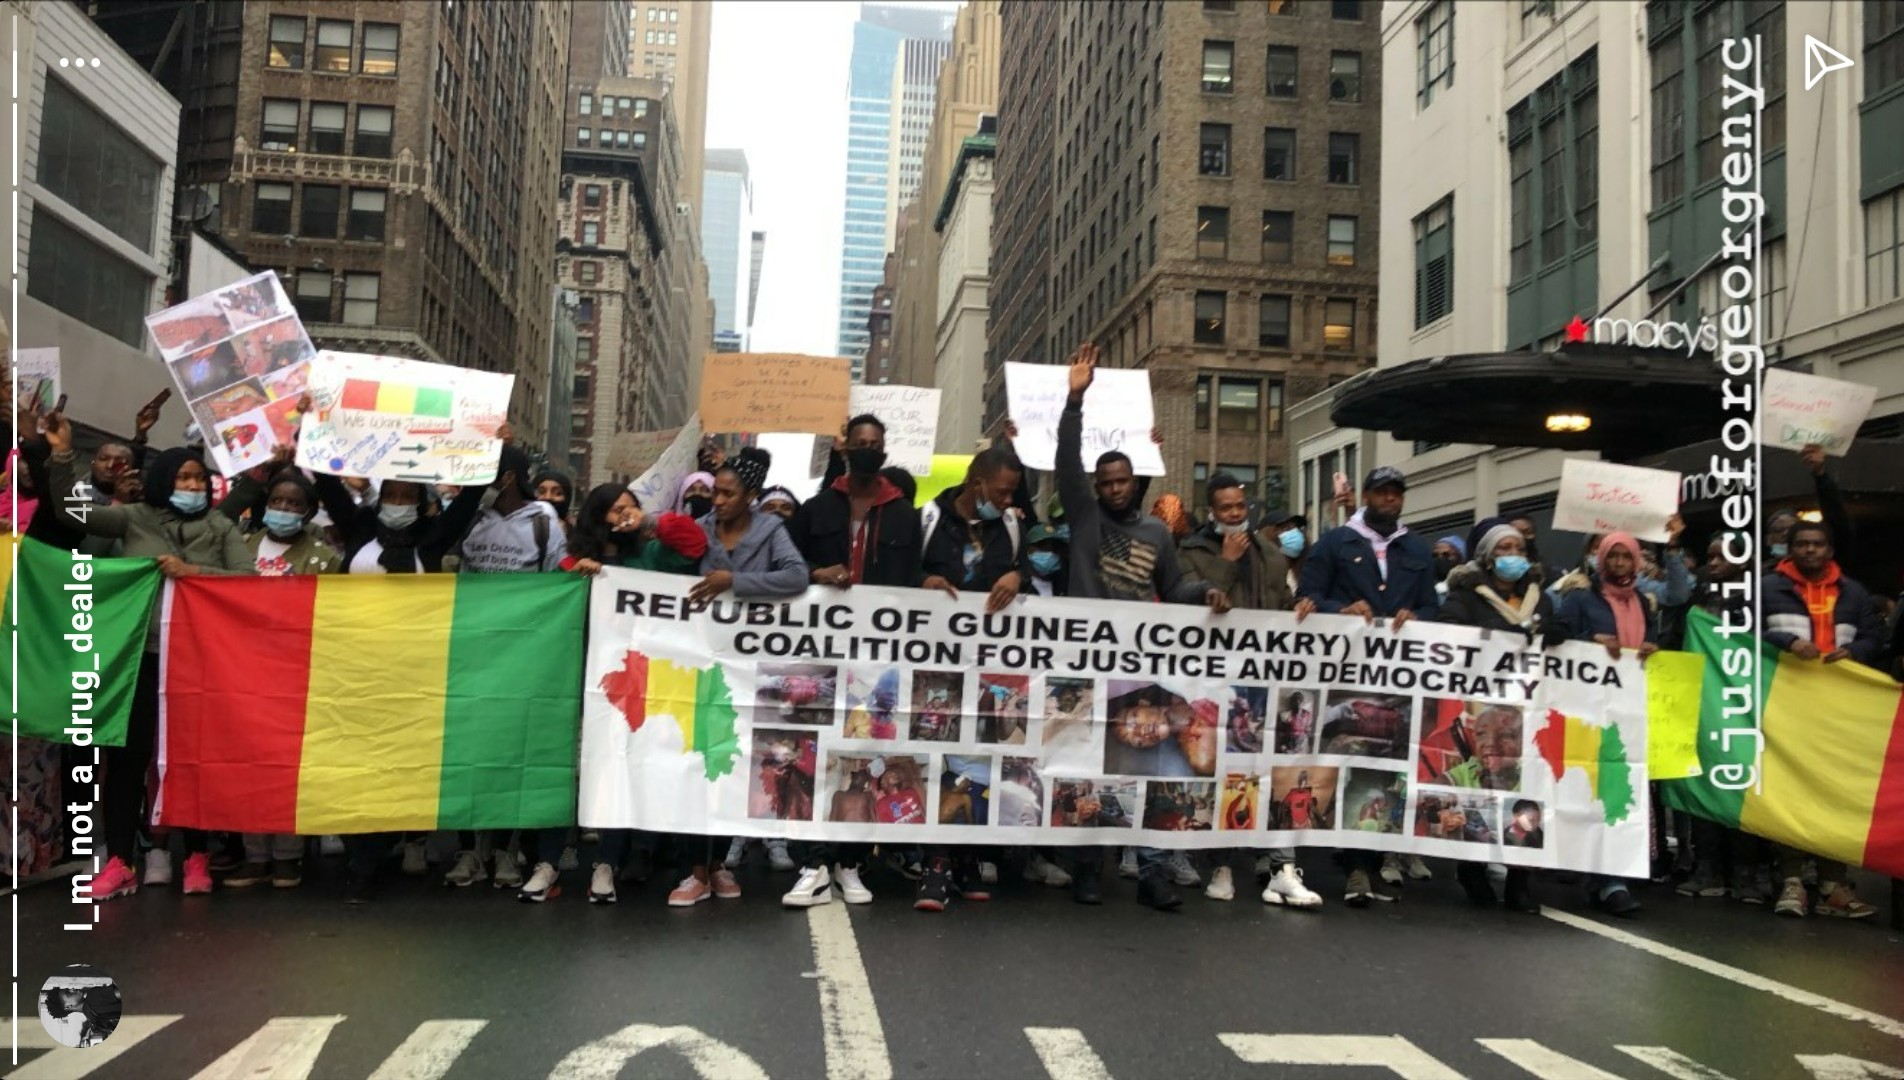 Protest in Manhattan in Solidarity With Guinea